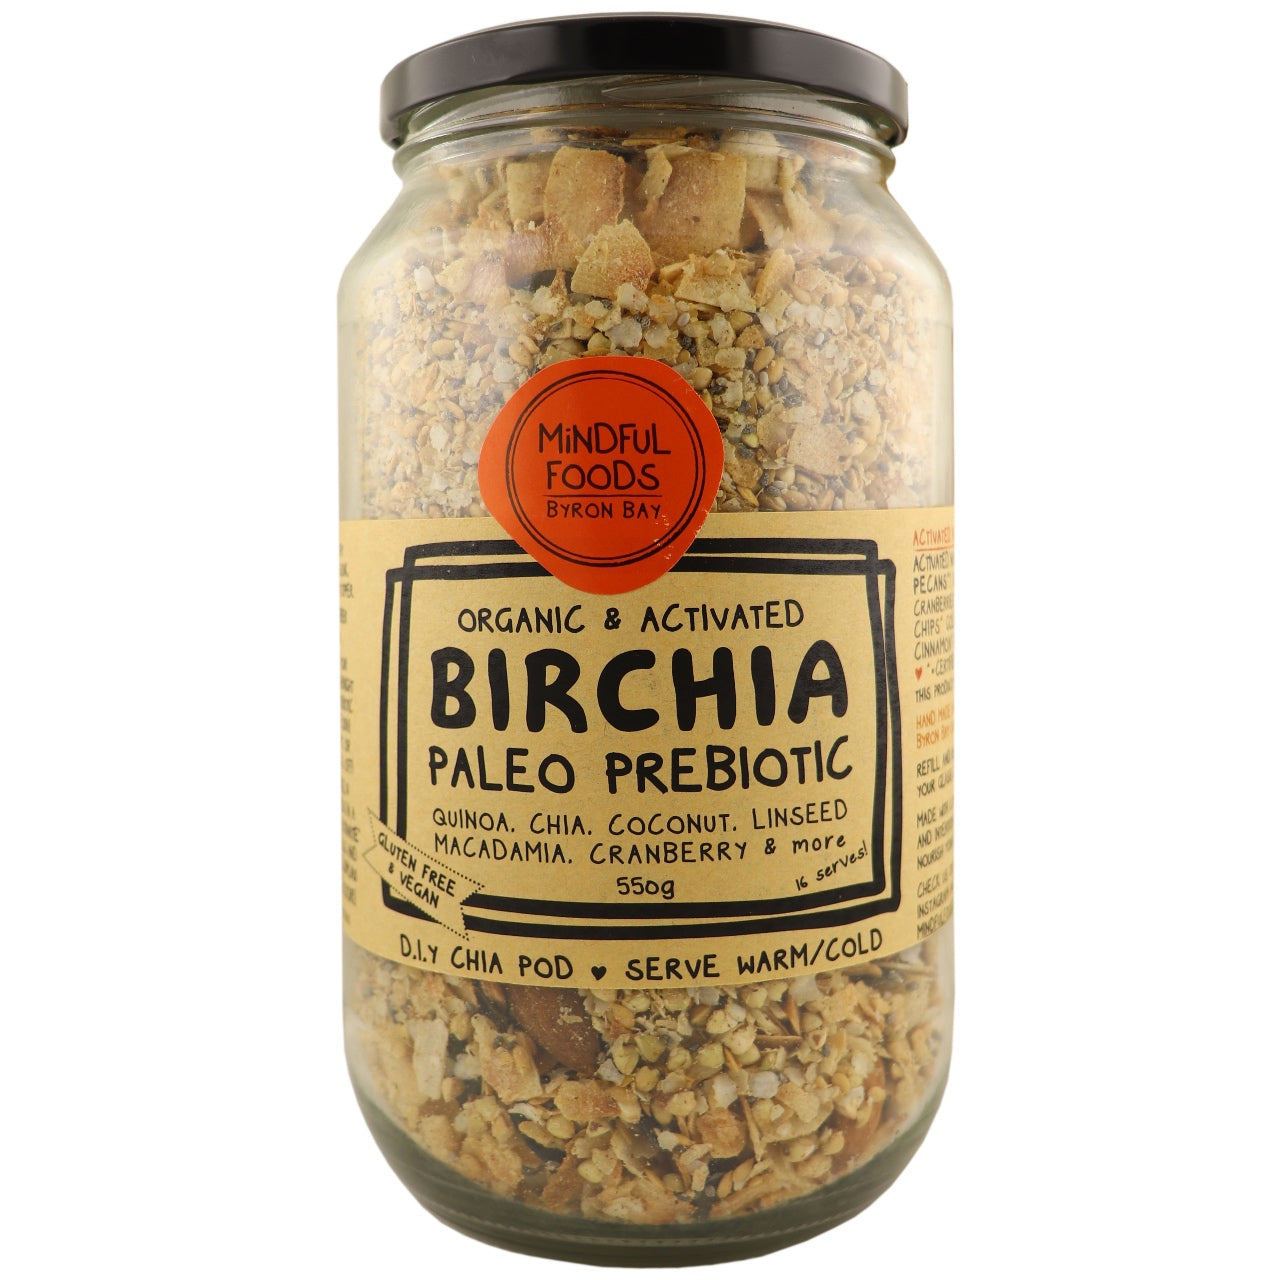 Mindful Foods Birchia Paleo Prebiotic Granola